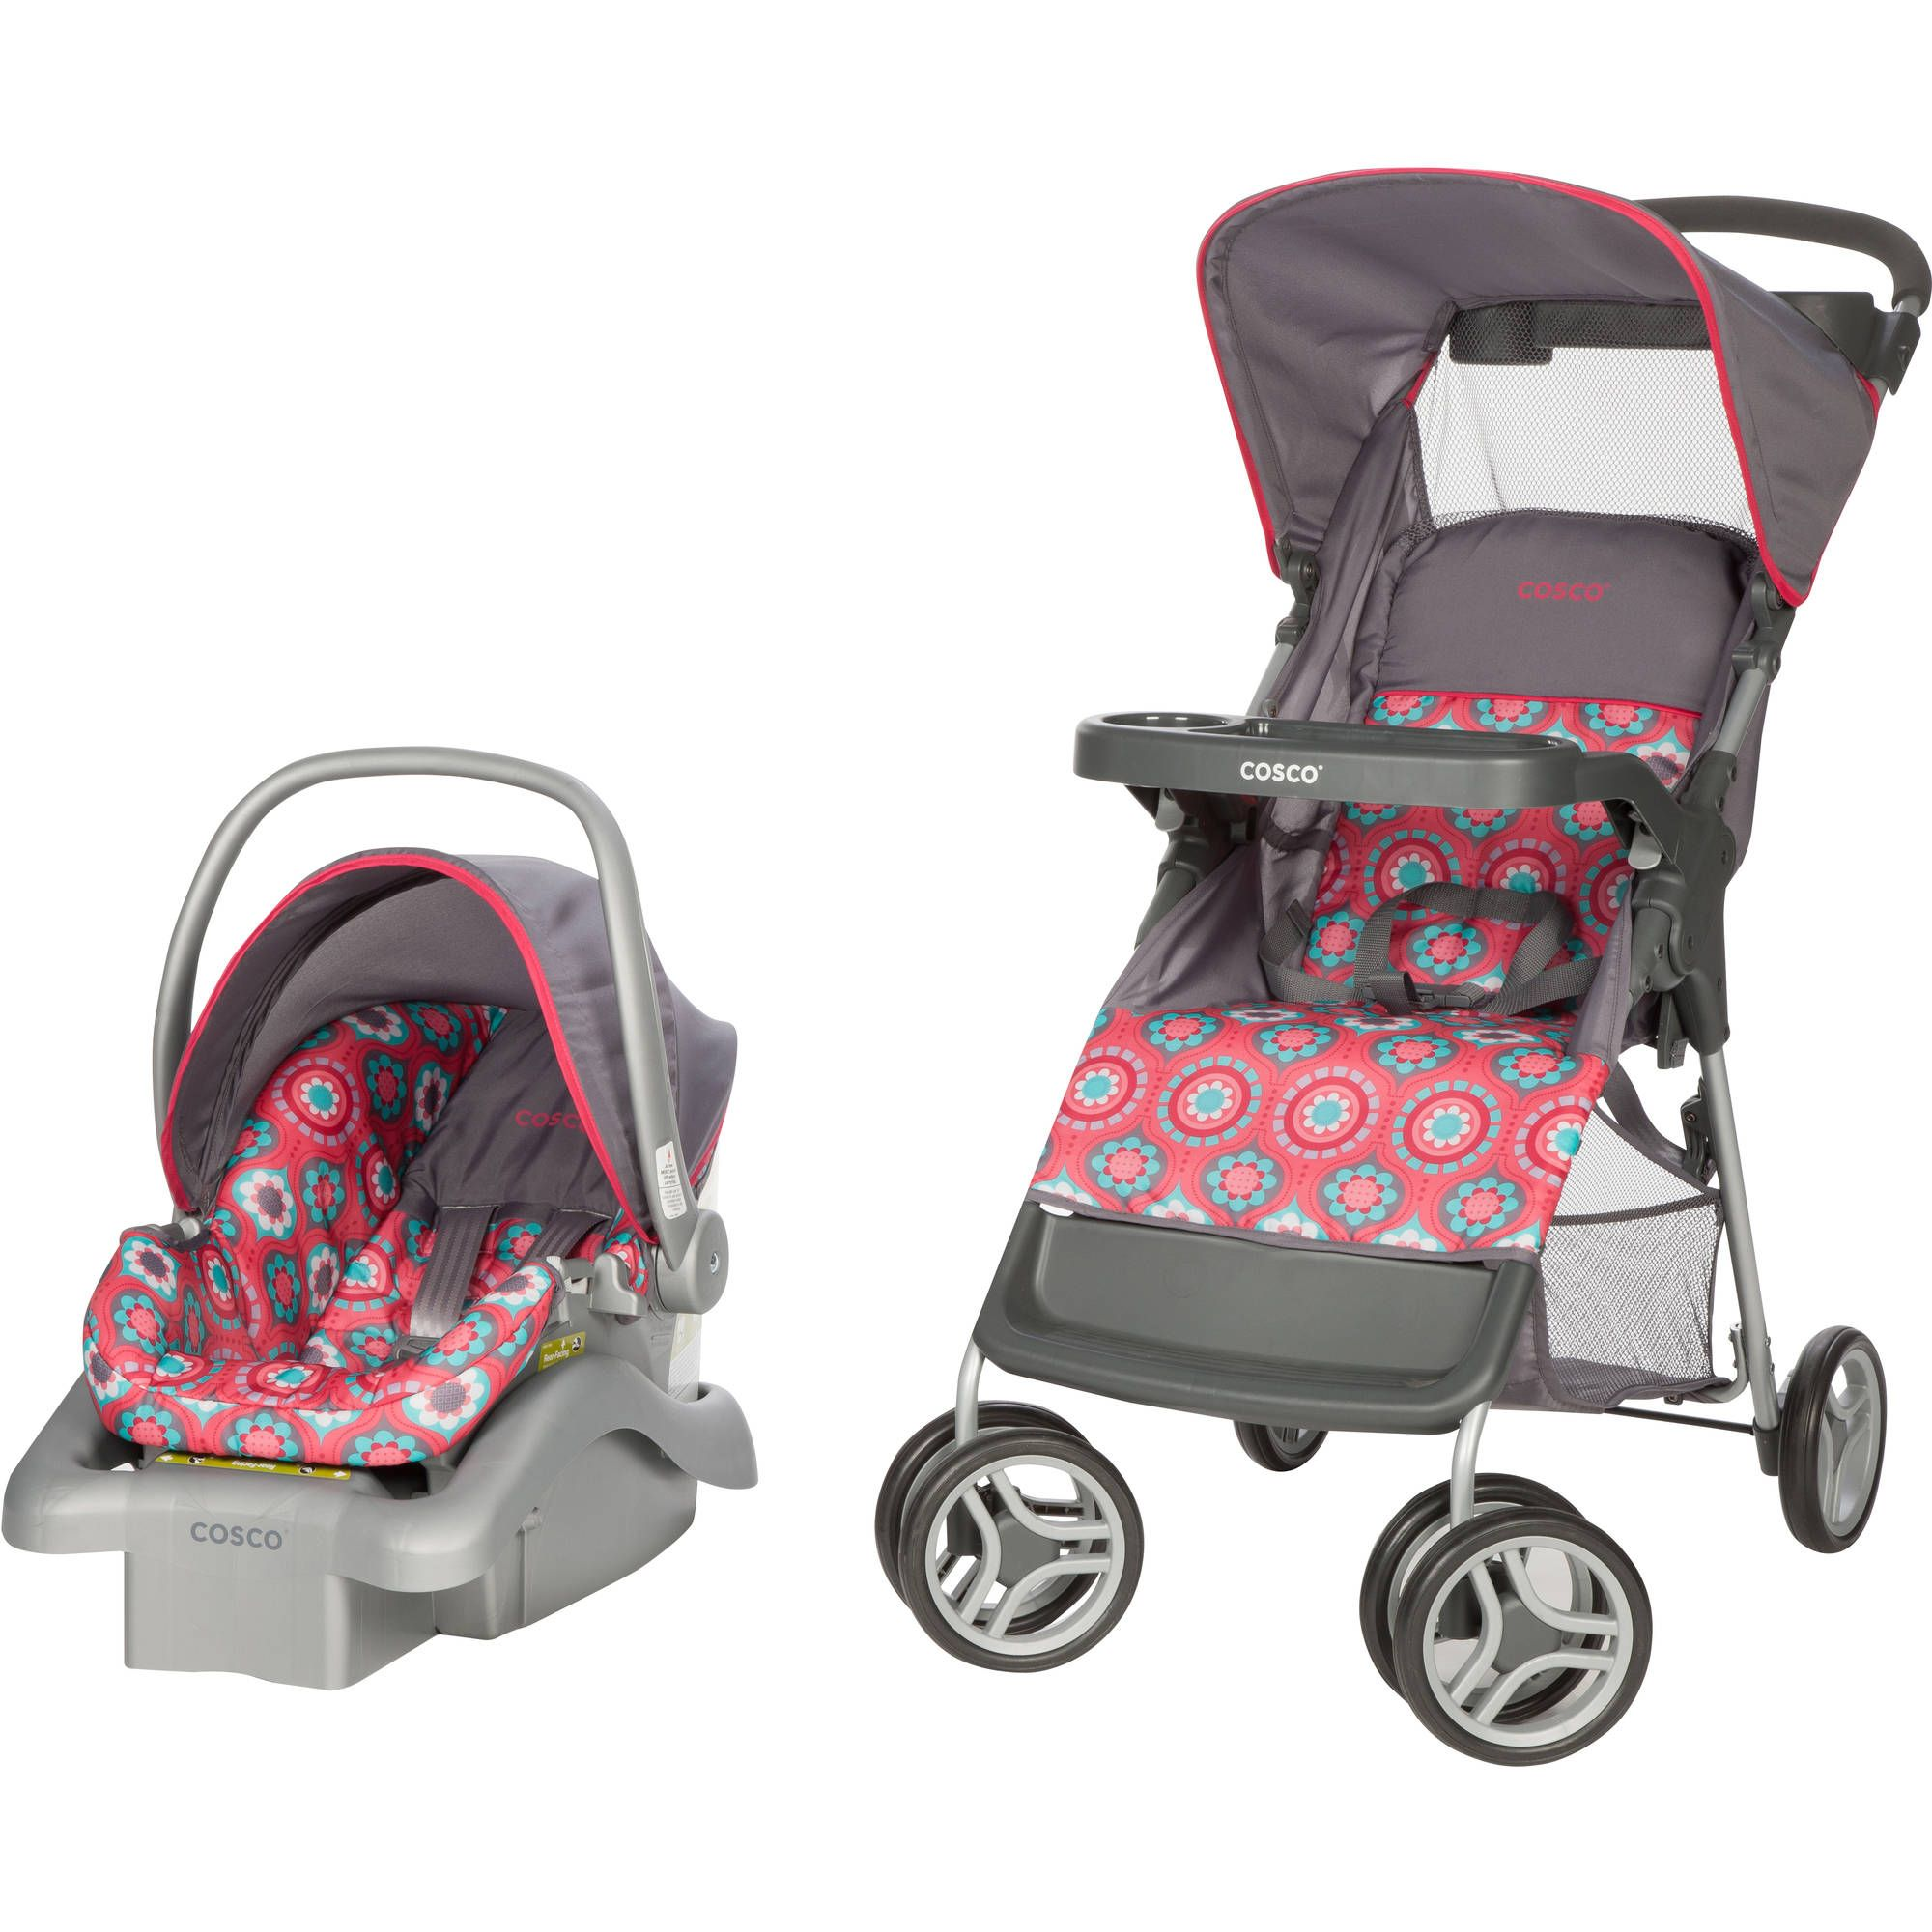 Cosco Lift \u0026 Stroll Travel System Baby Infant Toddler